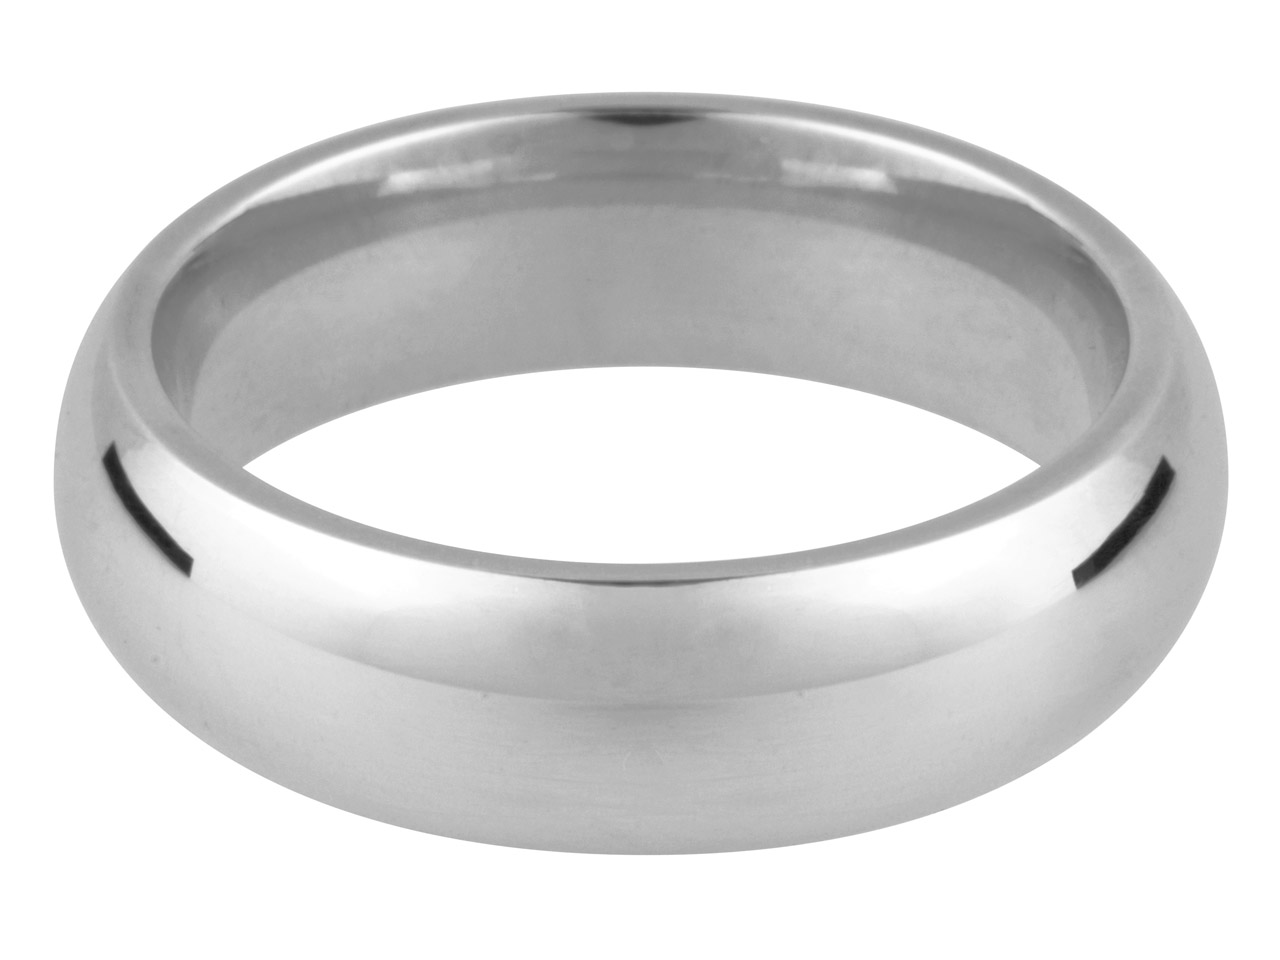 Silver Court Wedding Ring 6.0mm Y   8.6gms Heavy Weight Hallmarked Wall Thickness 2.39mm